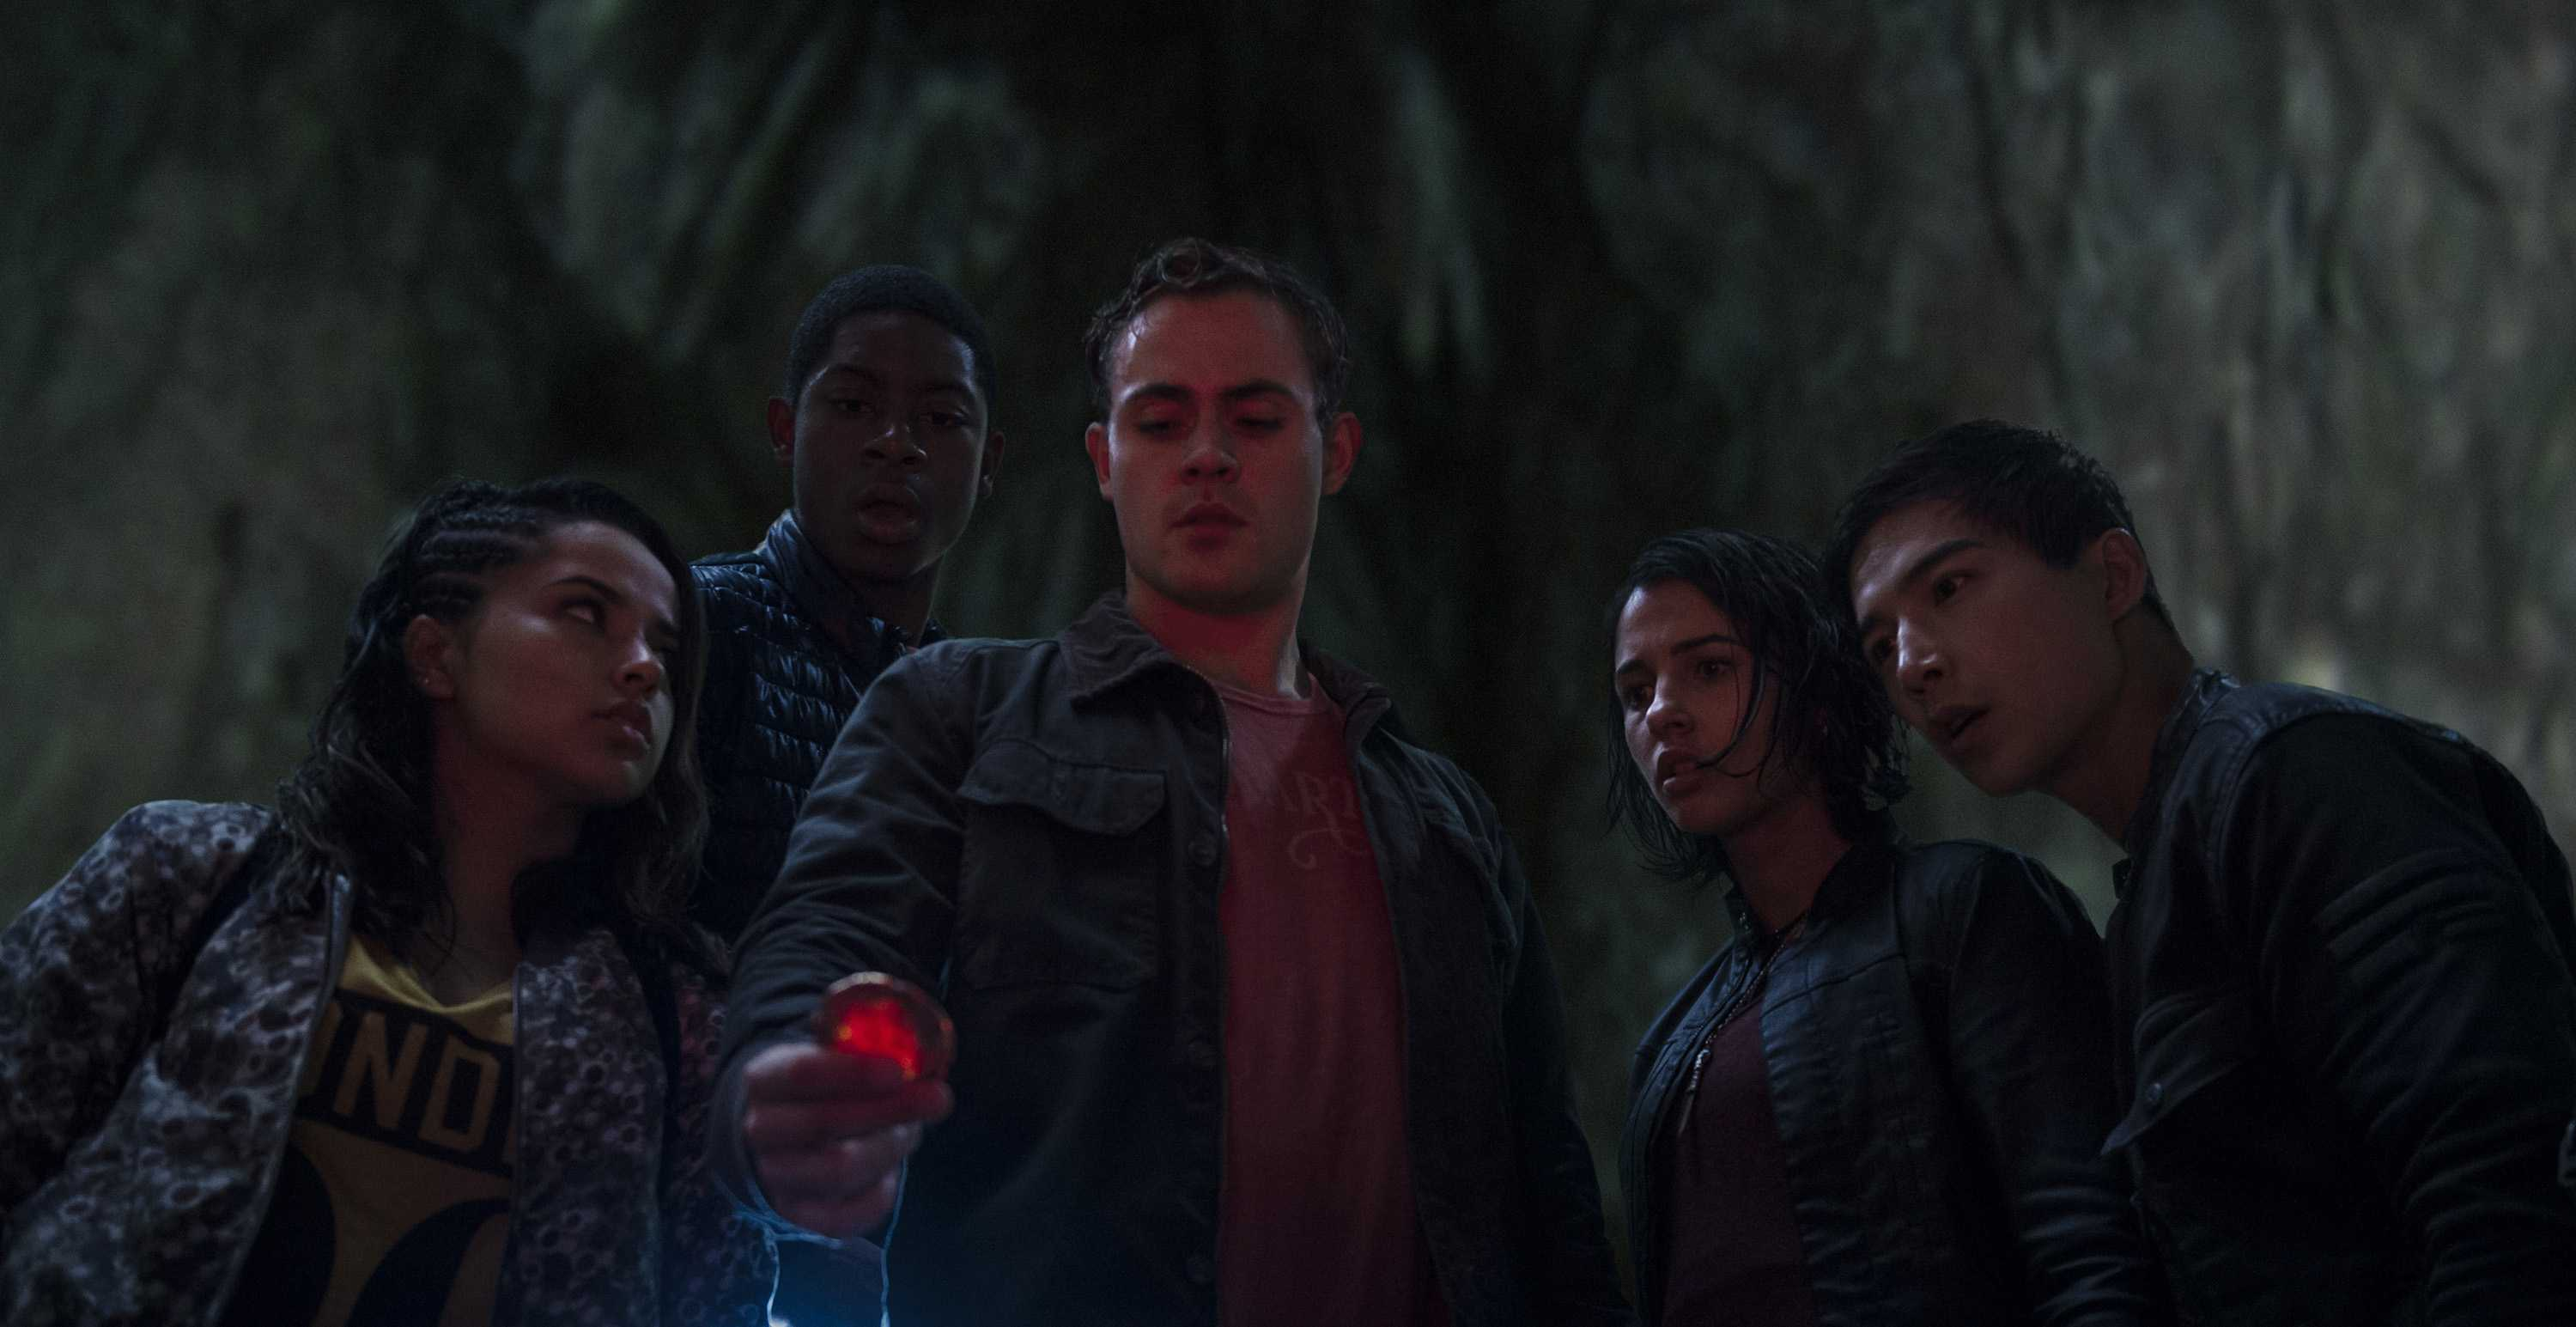 From left, Trini (Becky G), Billy (RJ Cyler), Jason (Dacre Montgomery), Kimberly (Naomi Scott), and Zack (Ludi Lin) in